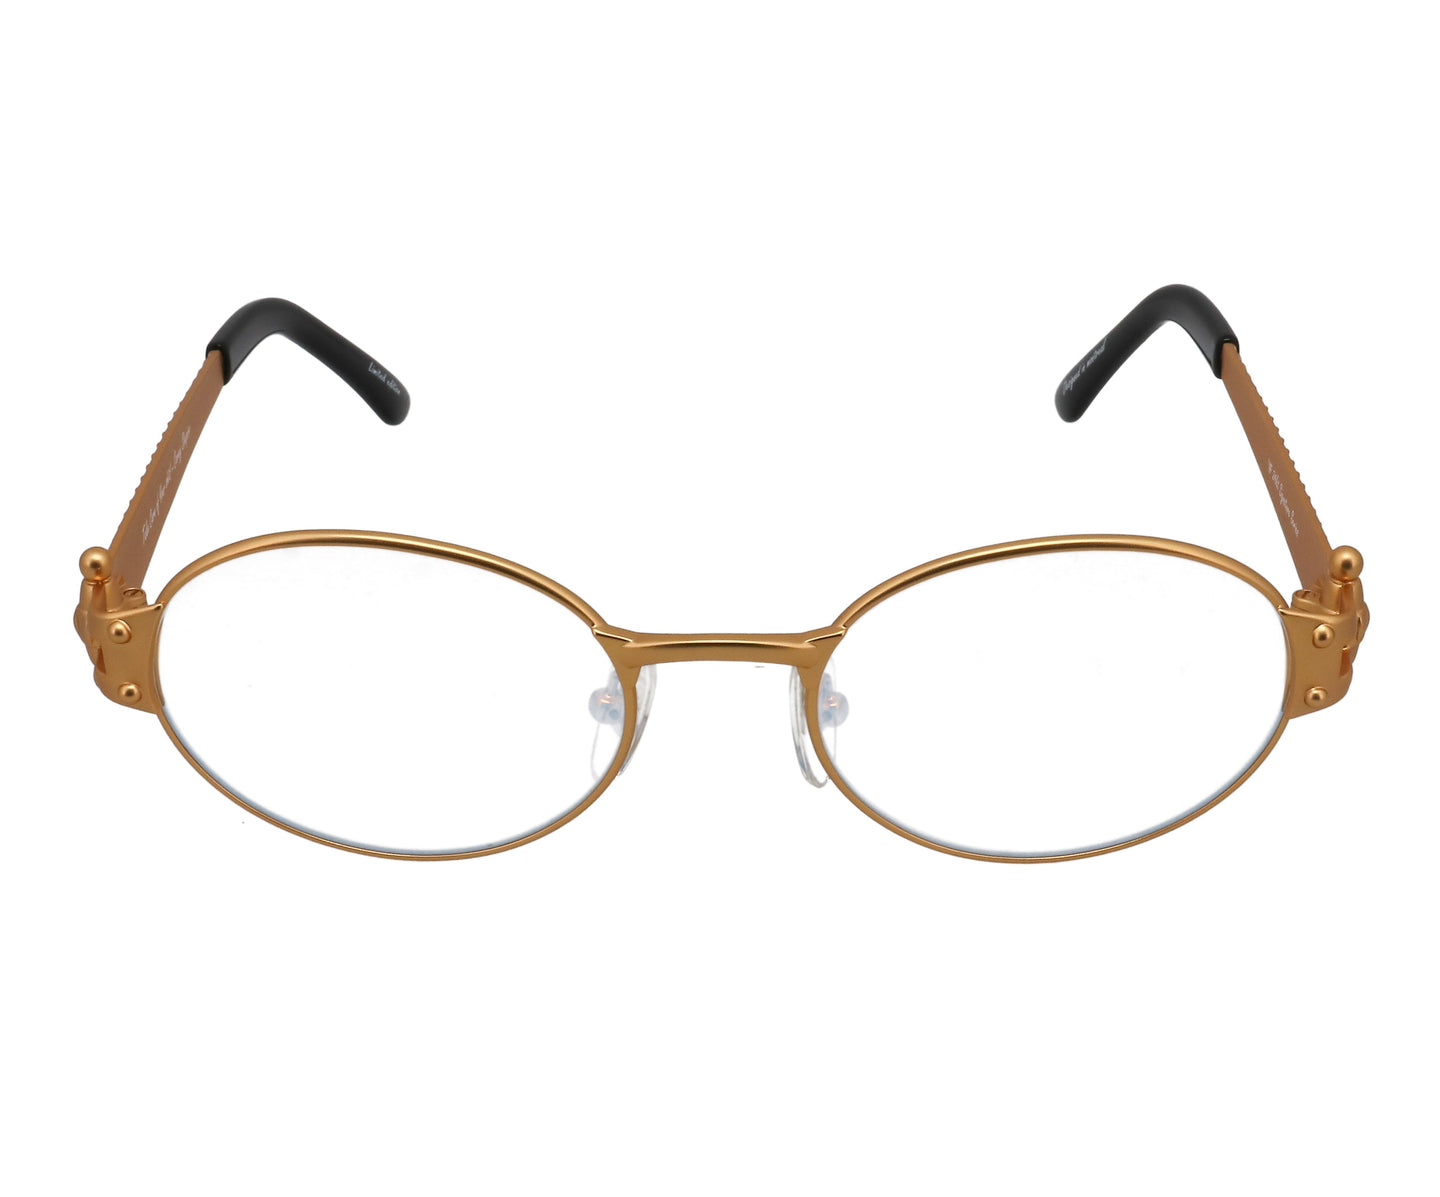 VF 2000 24KT Satin Gold Masterpiece (Yellow Multiflash), VF Masterpiece , glasses frames, eyeglasses online, eyeglass frames, mens glasses, womens glasses, buy glasses online, designer eyeglasses, vintage sunglasses, retro sunglasses, vintage glasses, sunglass, eyeglass, glasses, lens, vintage frames company, vf